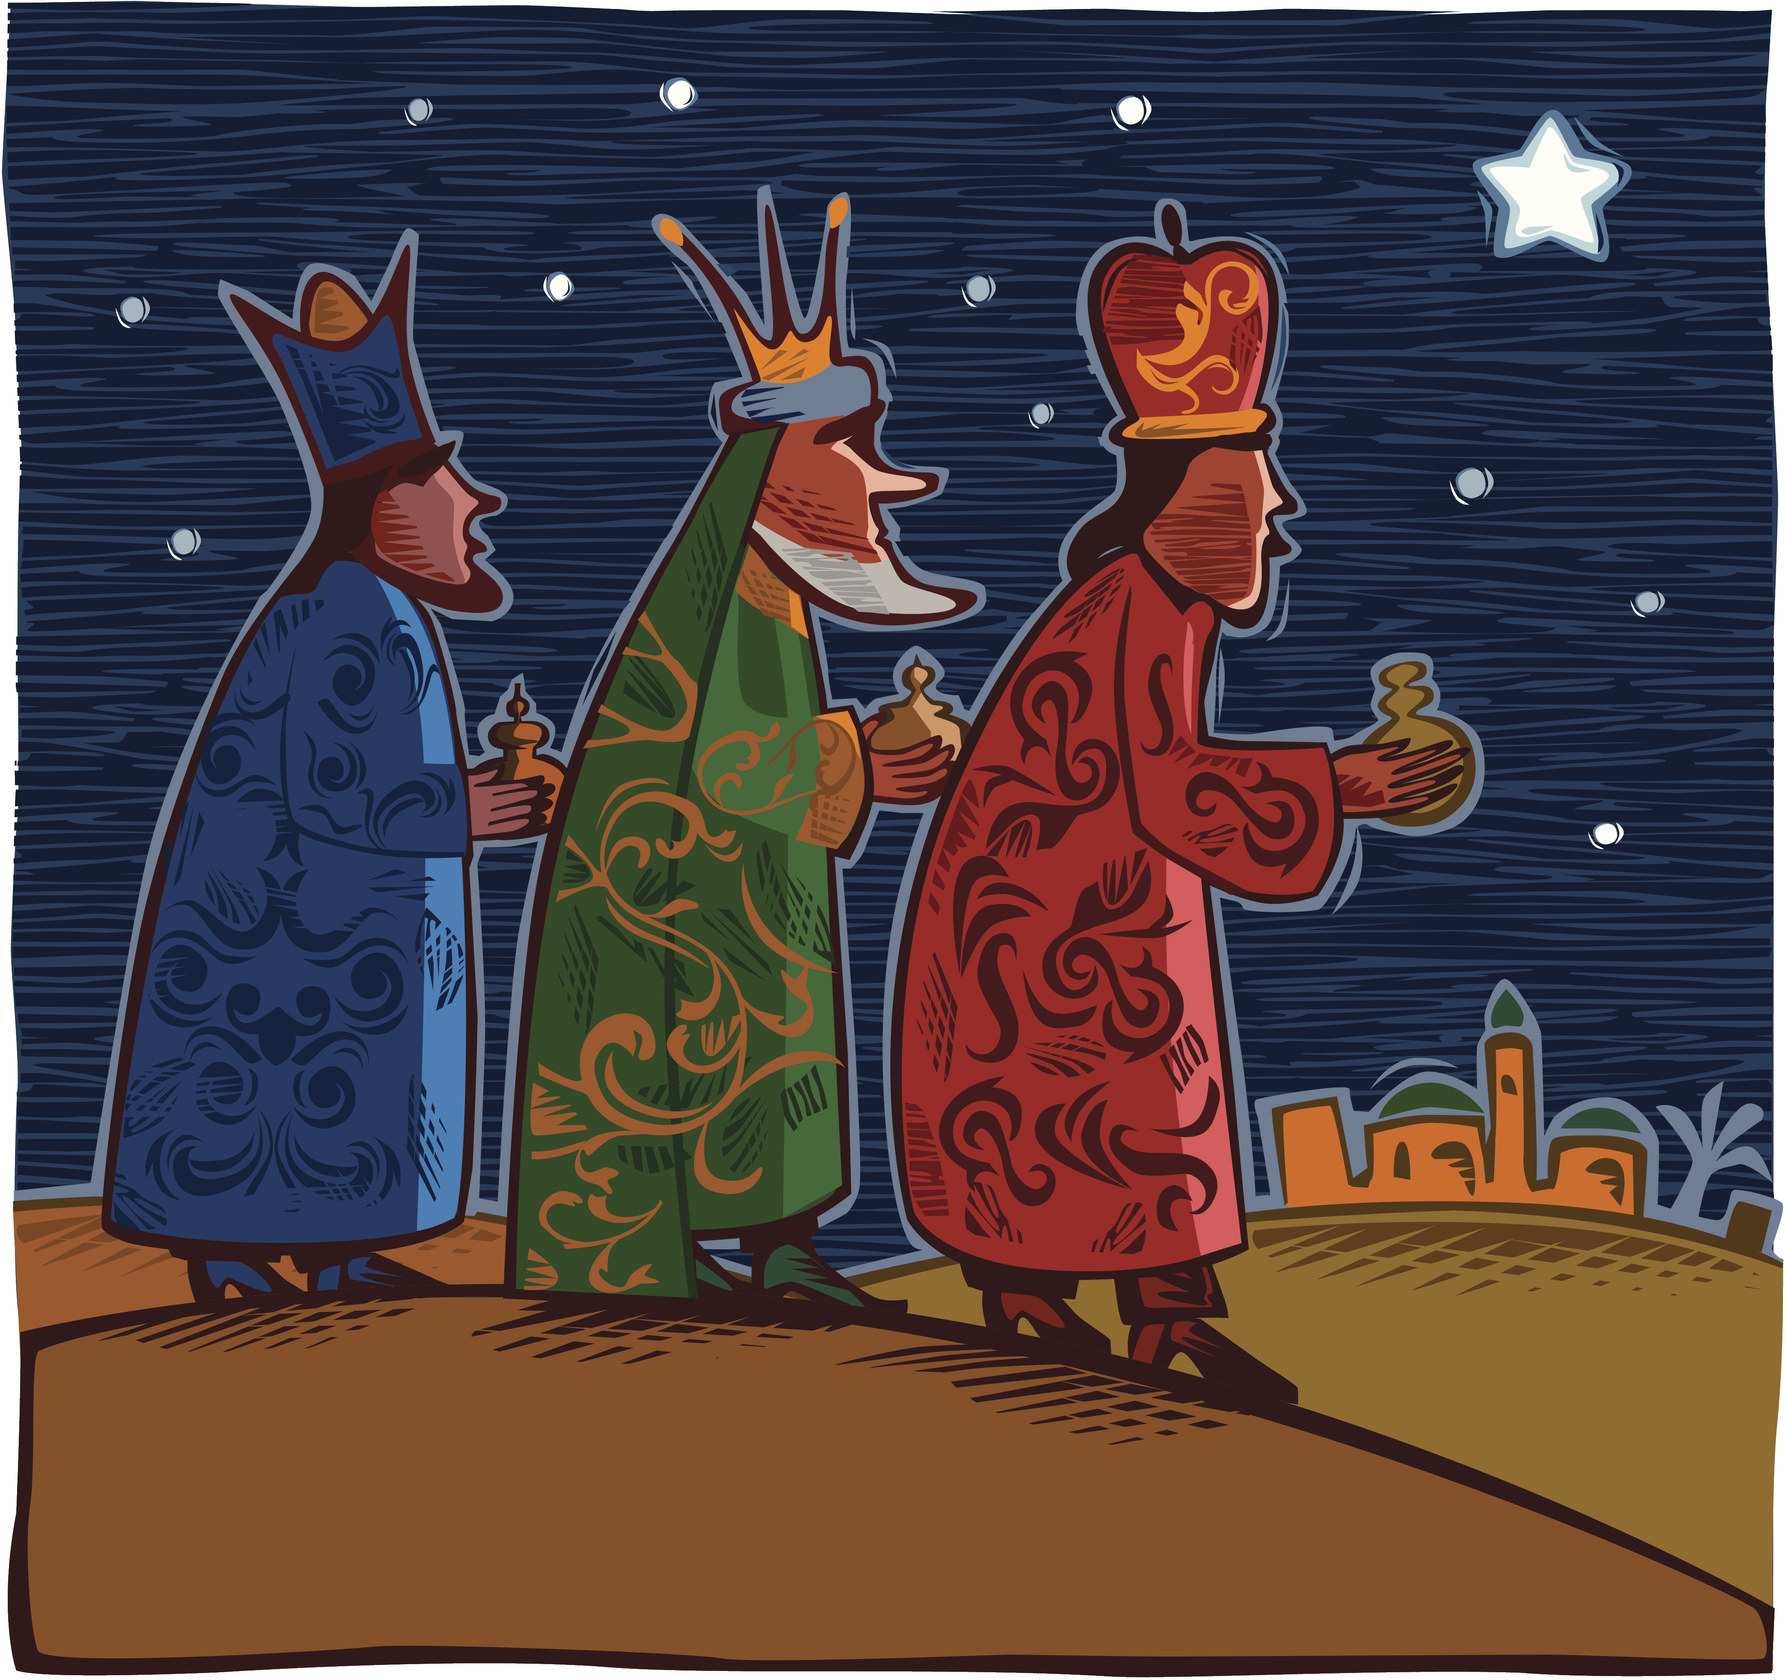 A drawing made to look like a relief of the Three Wise Men